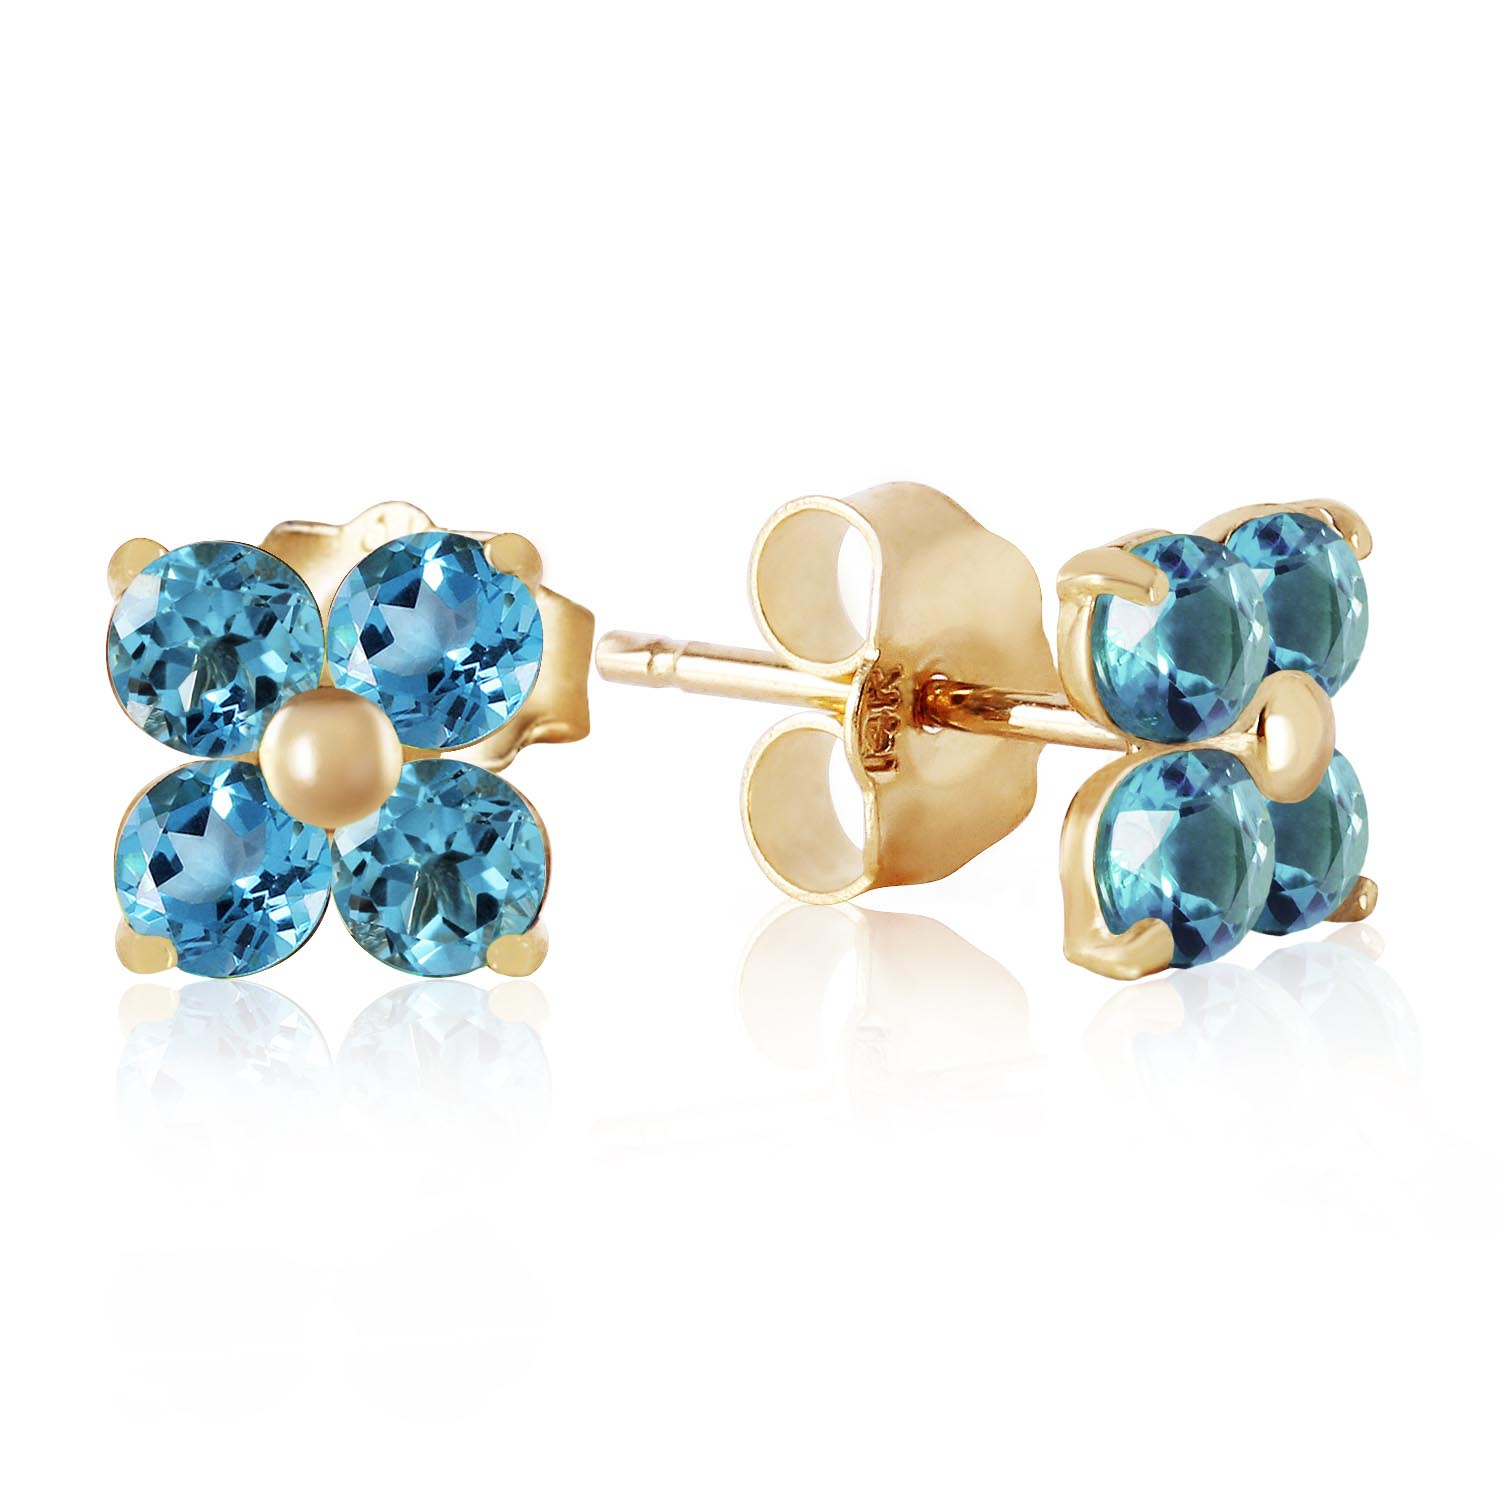 Bargain Blue Topaz Clover Stud Earrings 1.15ctw in 9ct Gold Stockists